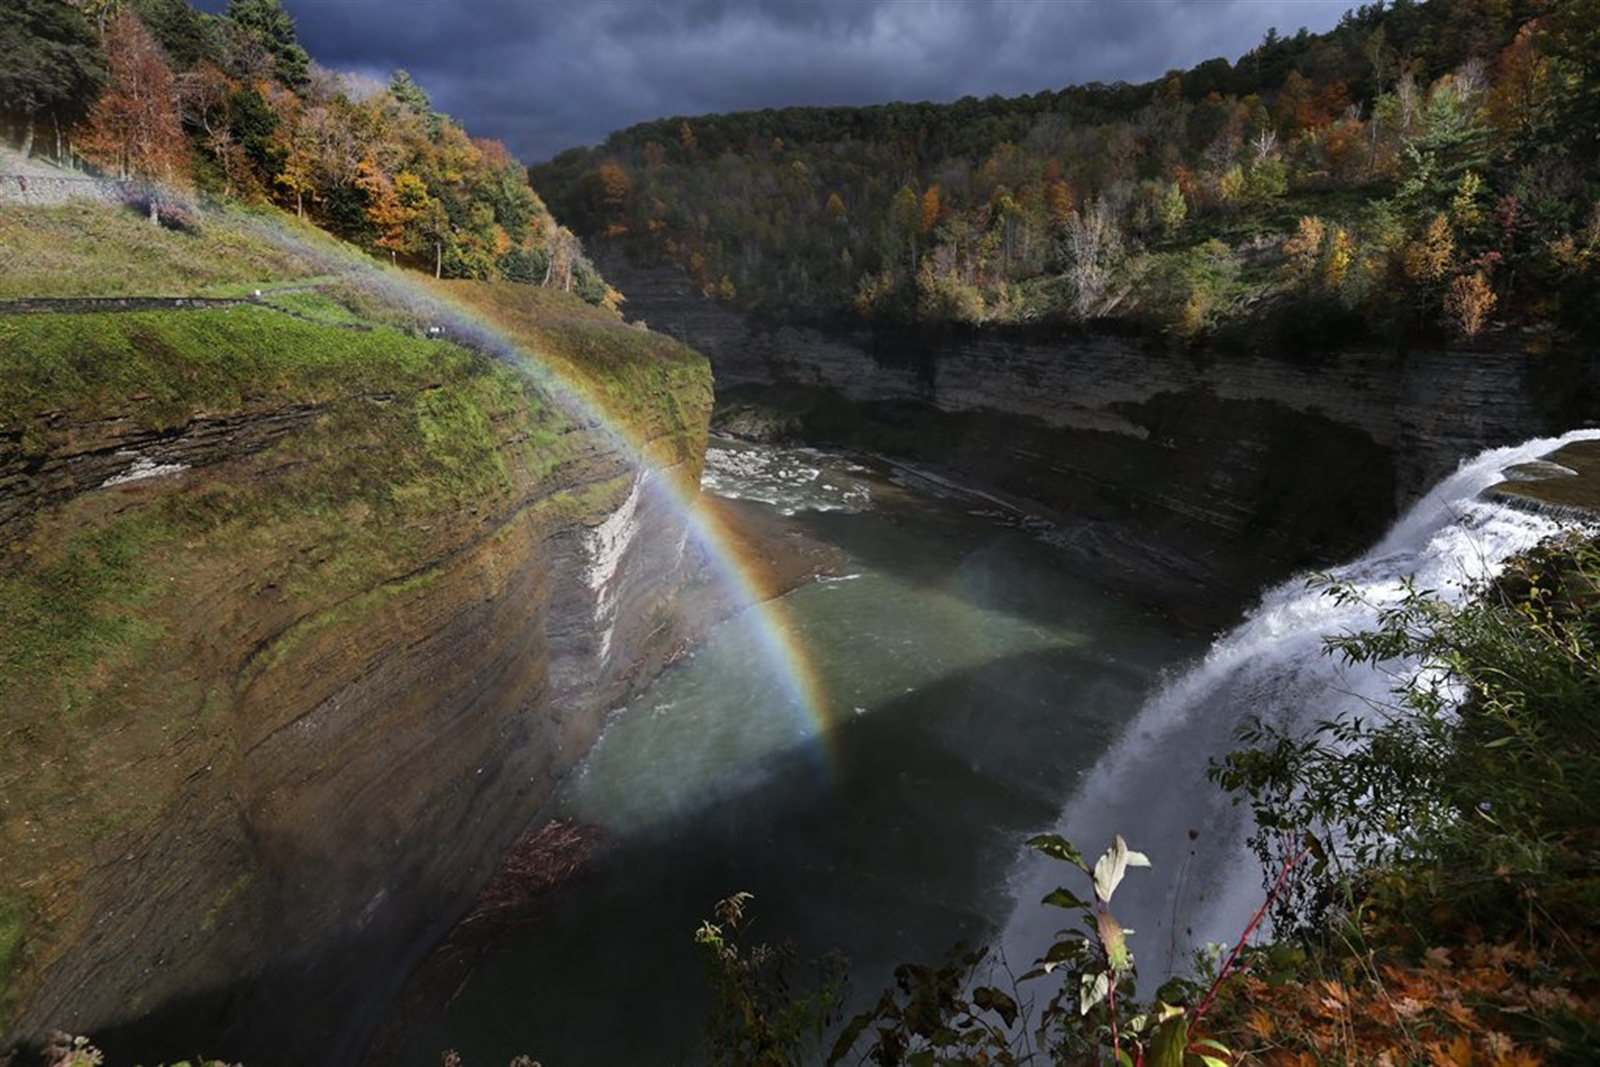 Letchworth State Park, Castile. (585) 493-3600  Nicknamed u201cthe Grand Canyon of the East,u201d Letchworth is a getaway that really makes you feel you are getting away. With more than 14,000 acres along the Genesee River, people rave about the gorge and three exceptional waterfalls. There are 70 miles of trails to hike, rated easy to moderate difficulty.